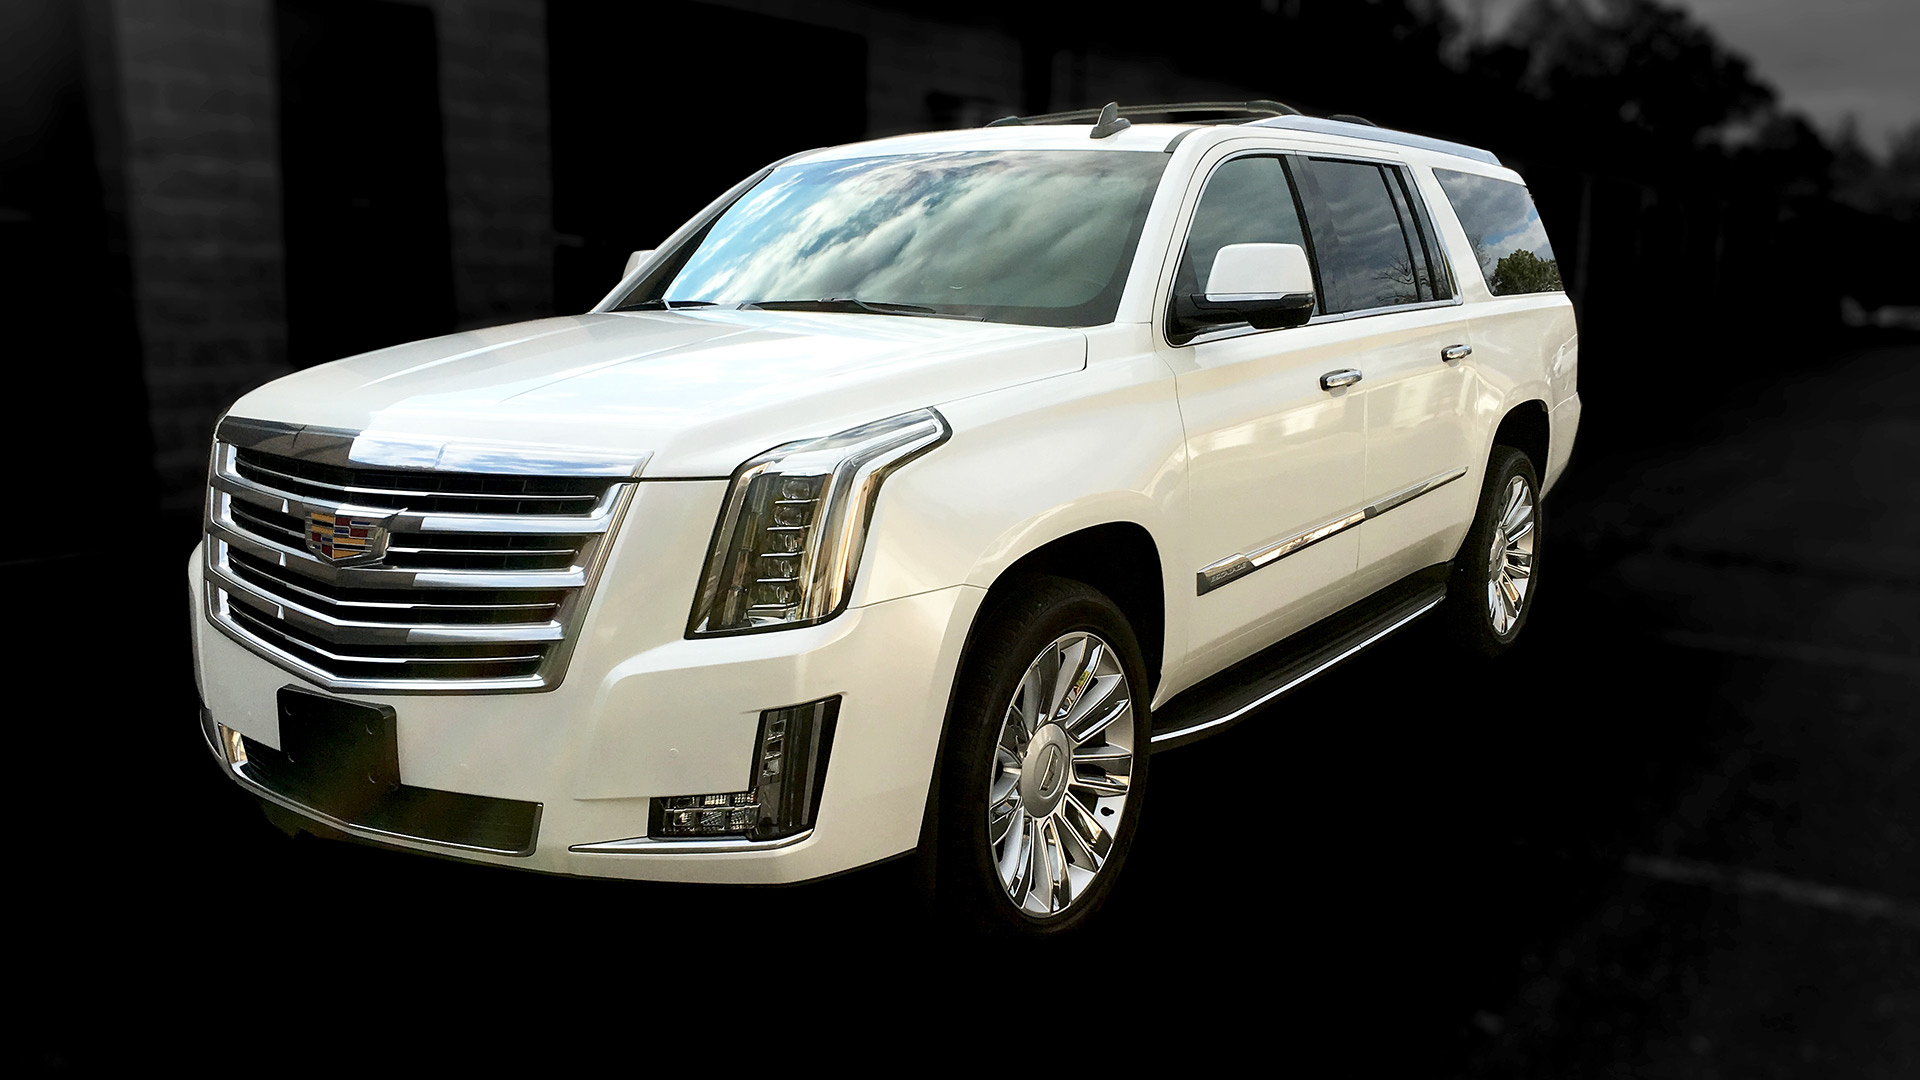 Escalade - White Wrap